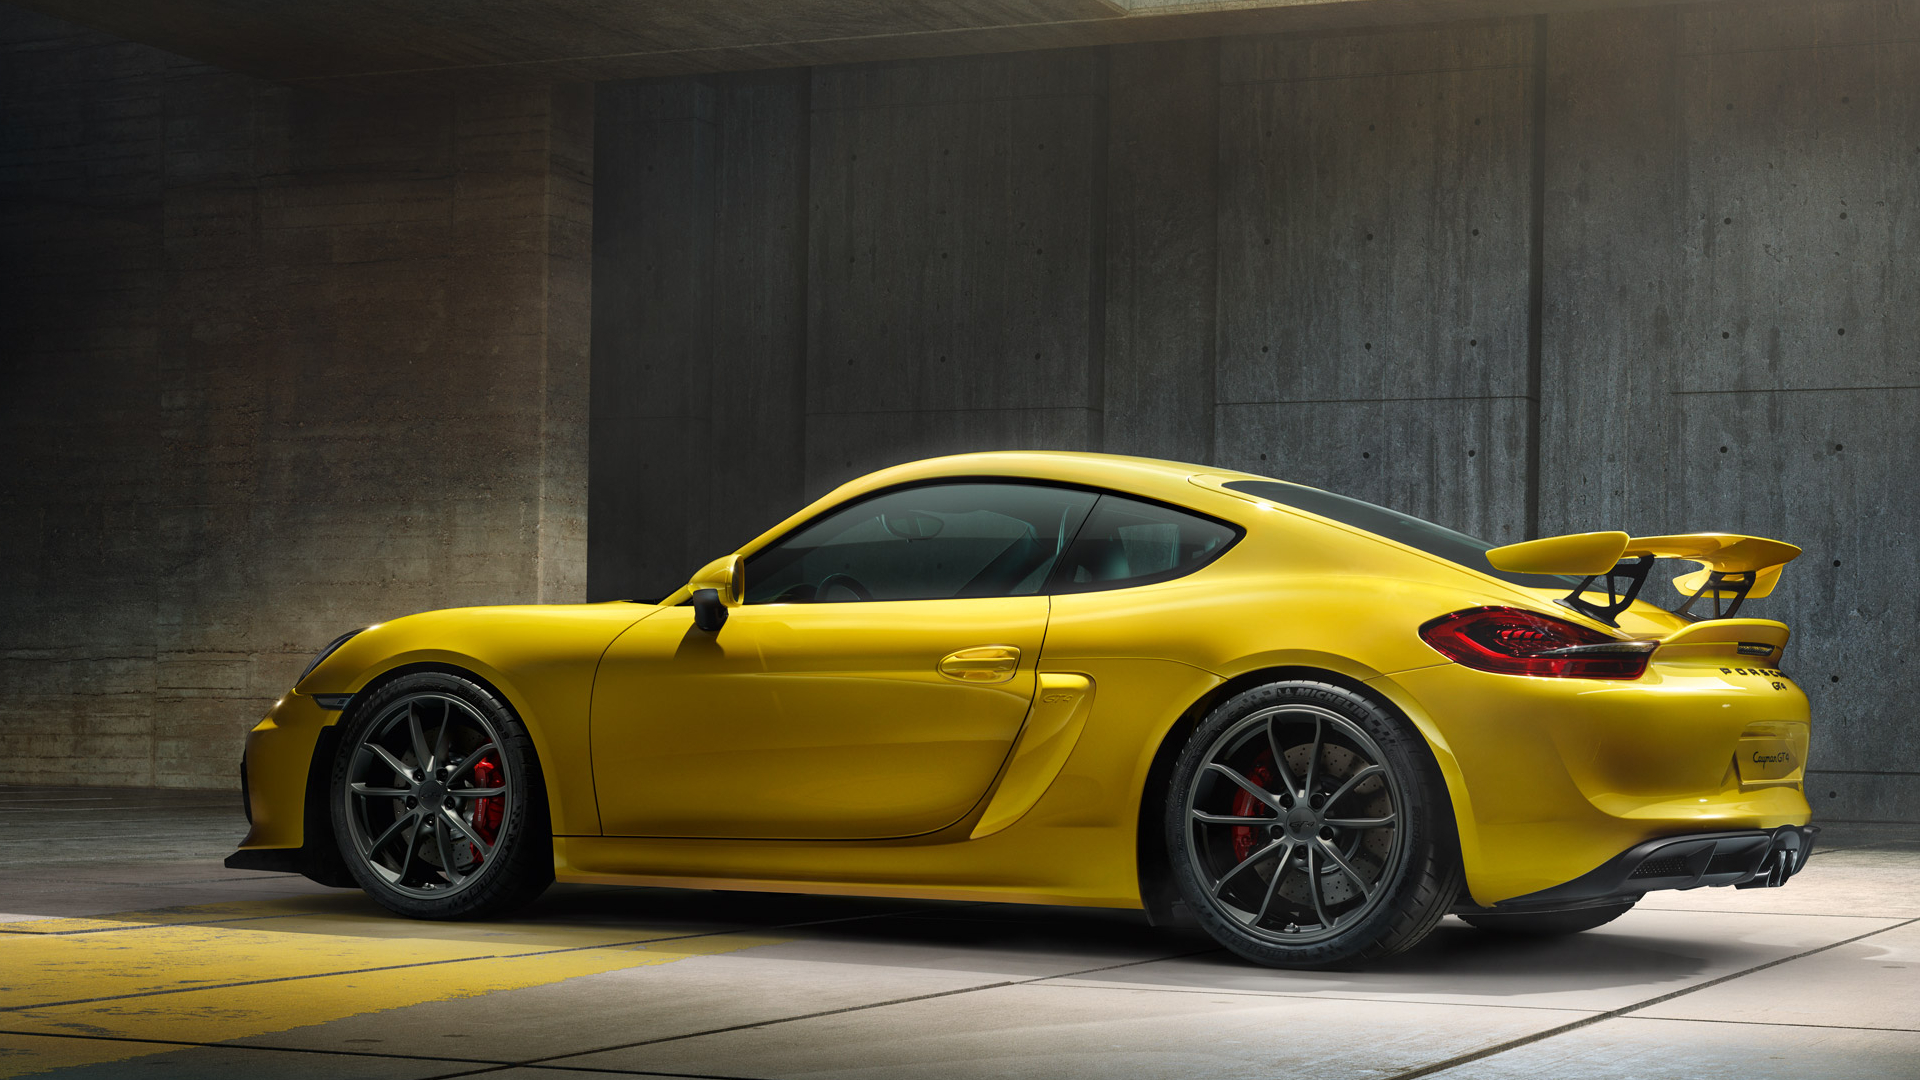 Porsche Cayman GT4 Full HD Wallpaper And Background Image